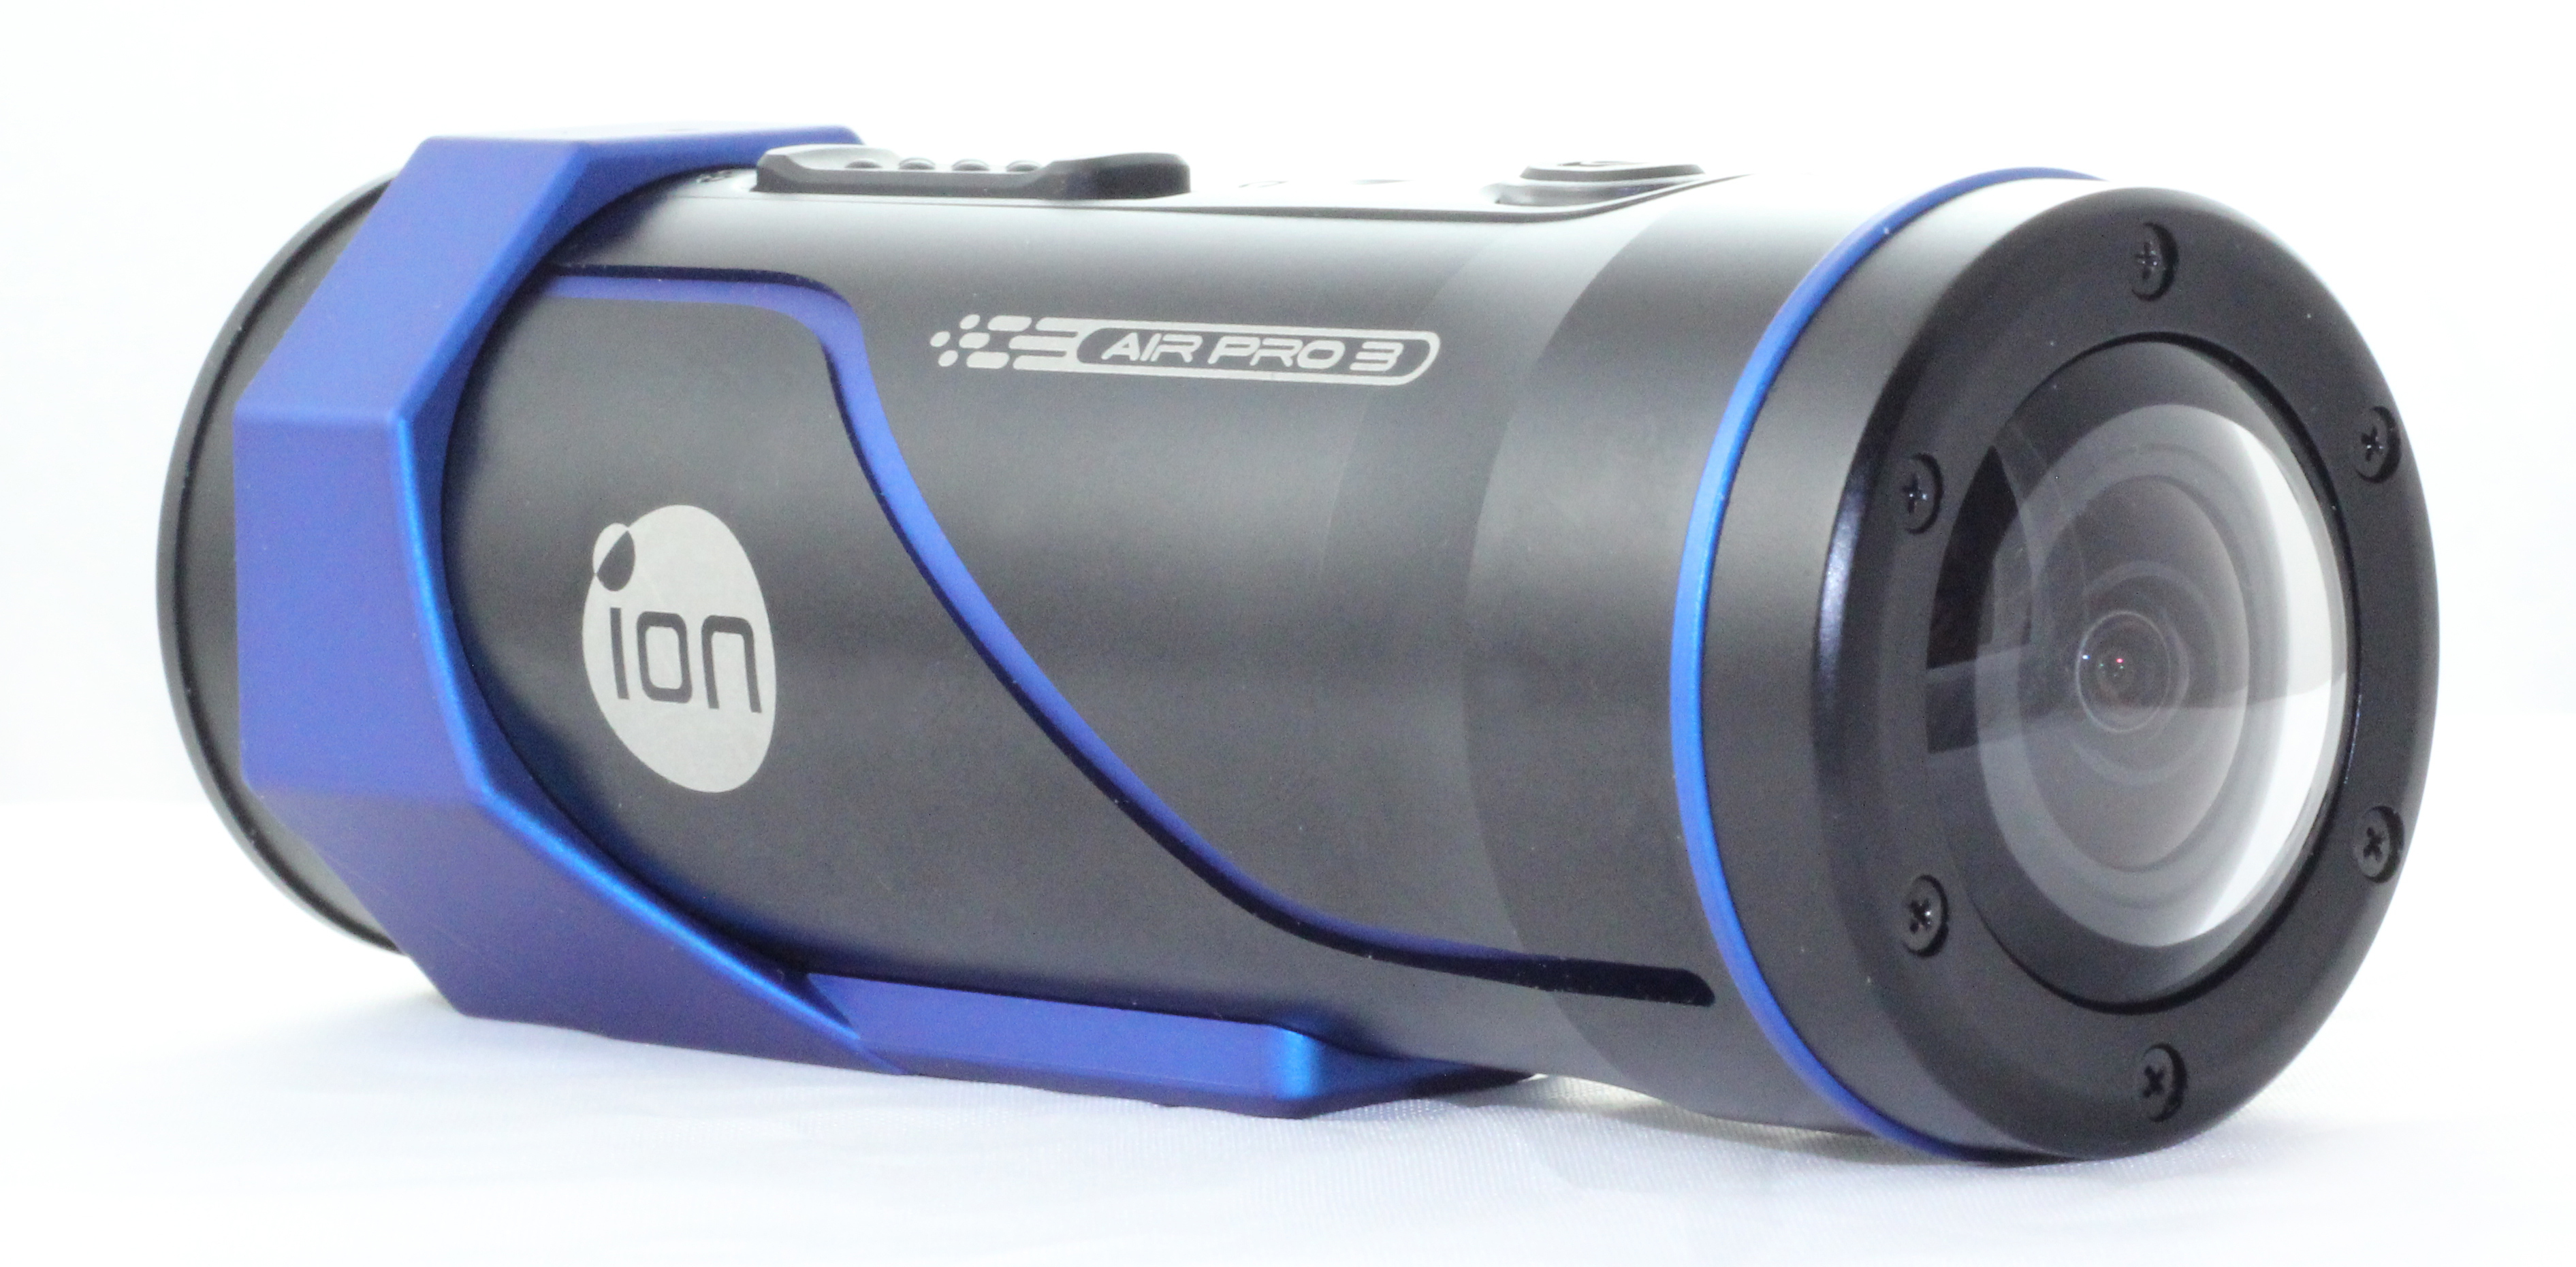 Ion Air Pro 3 Adds New Image Sensor, Swims Deeper